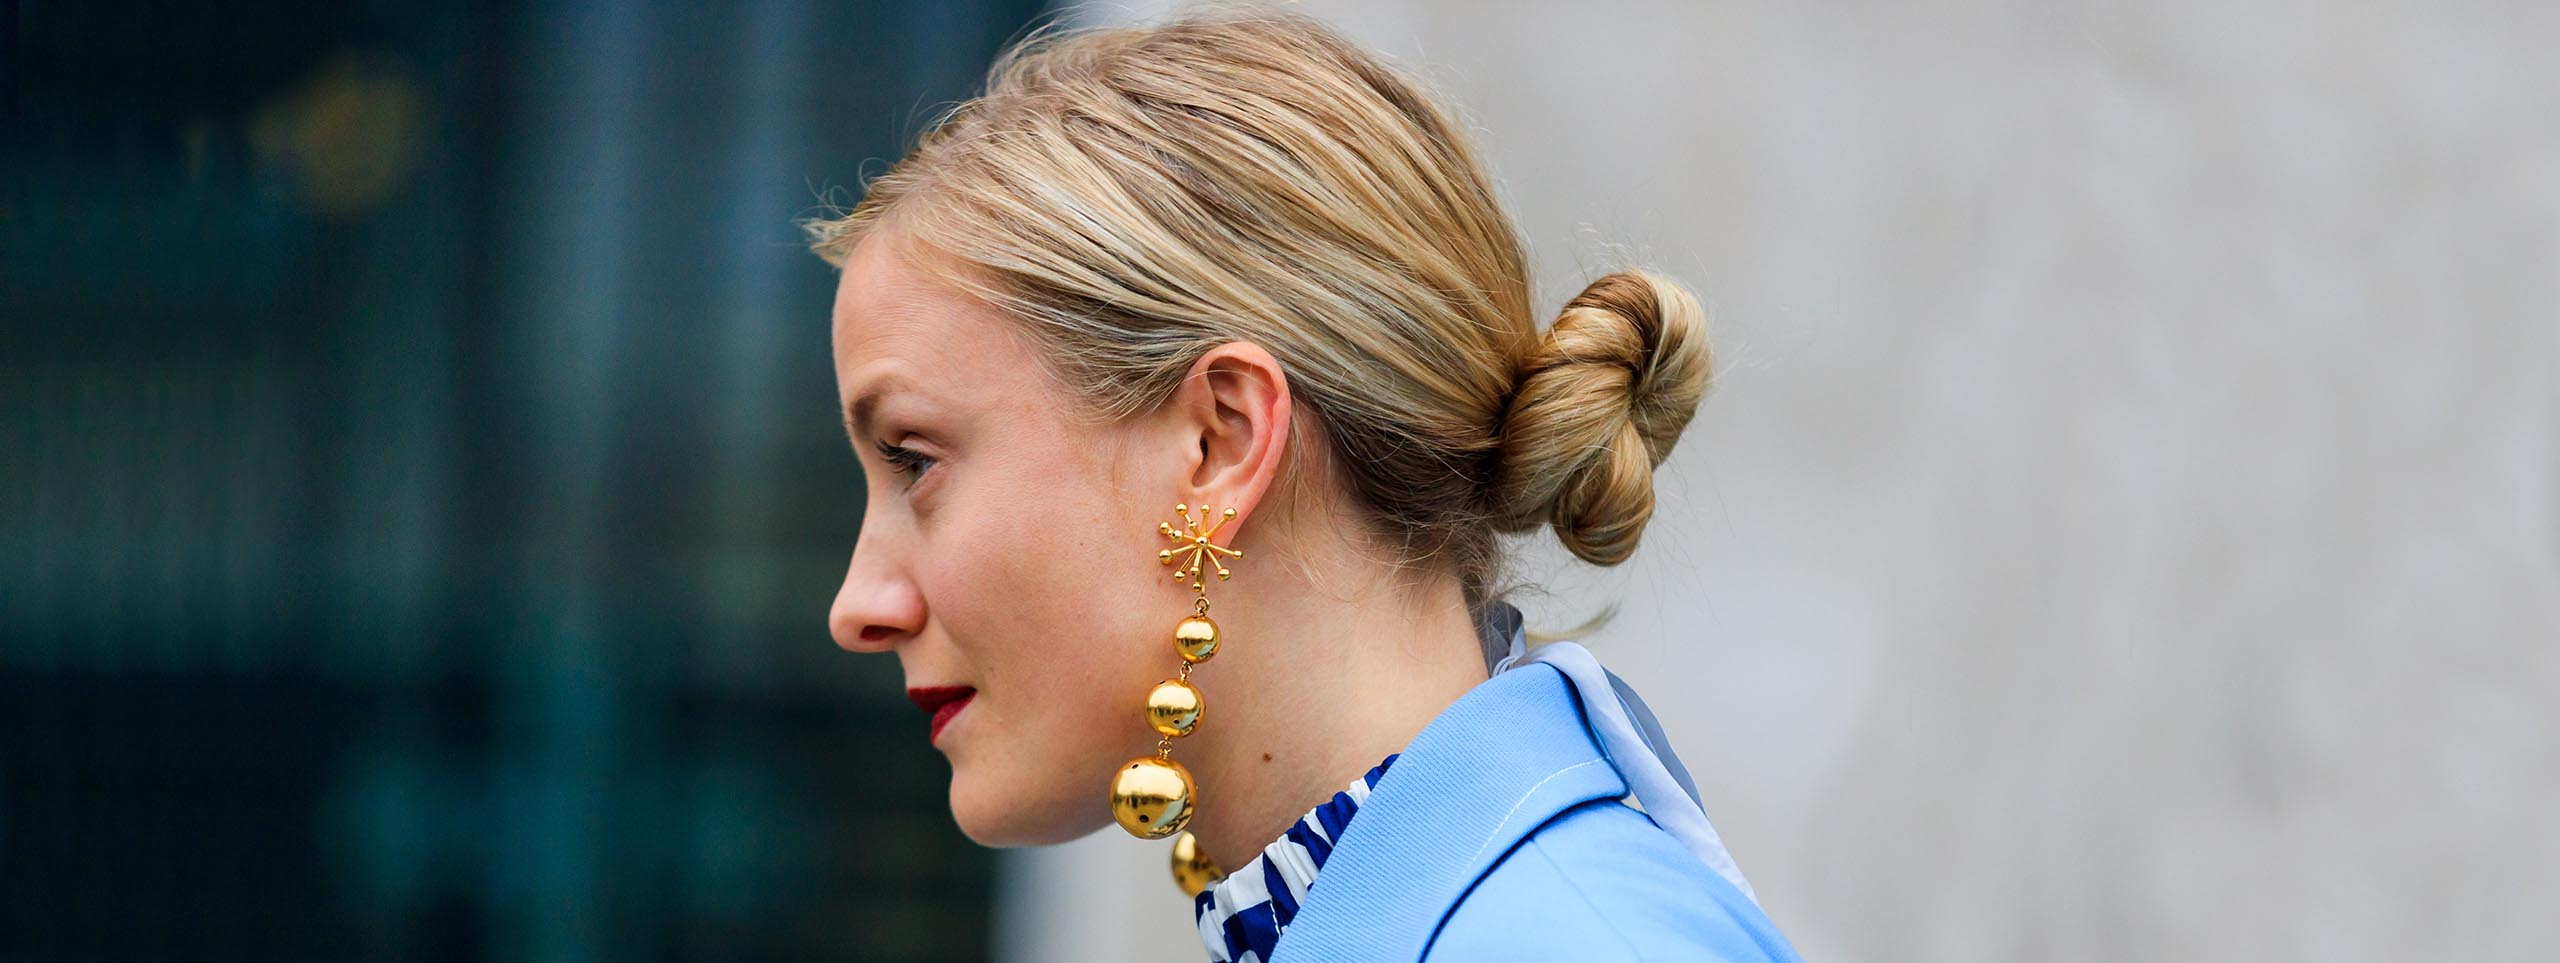 Business Hairstyles Score Points At Work